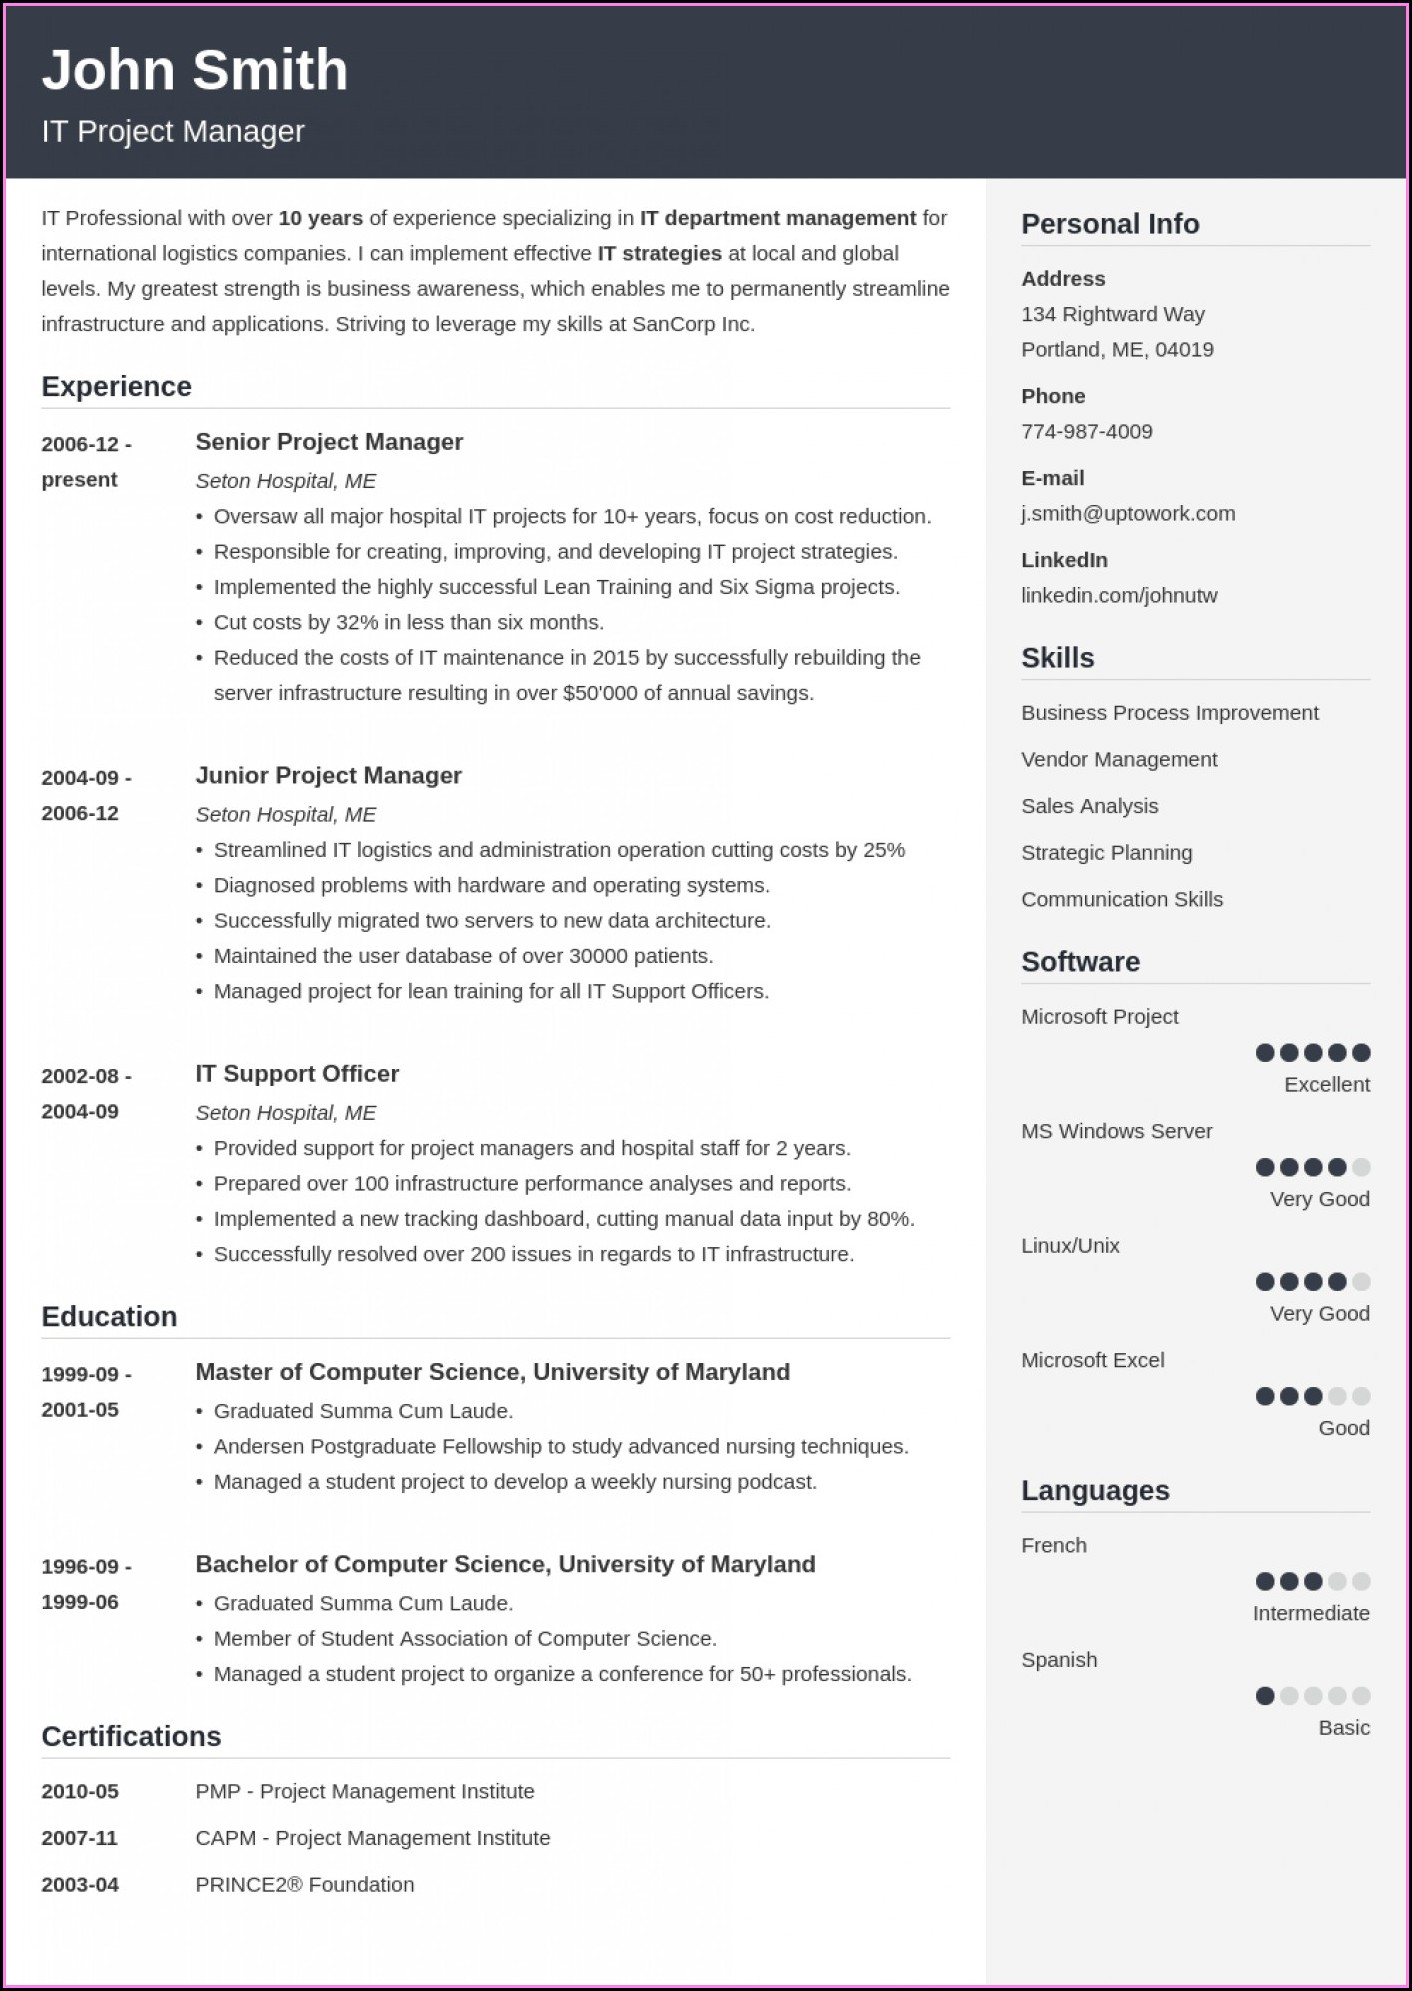 Best Free Modern Resume Builder